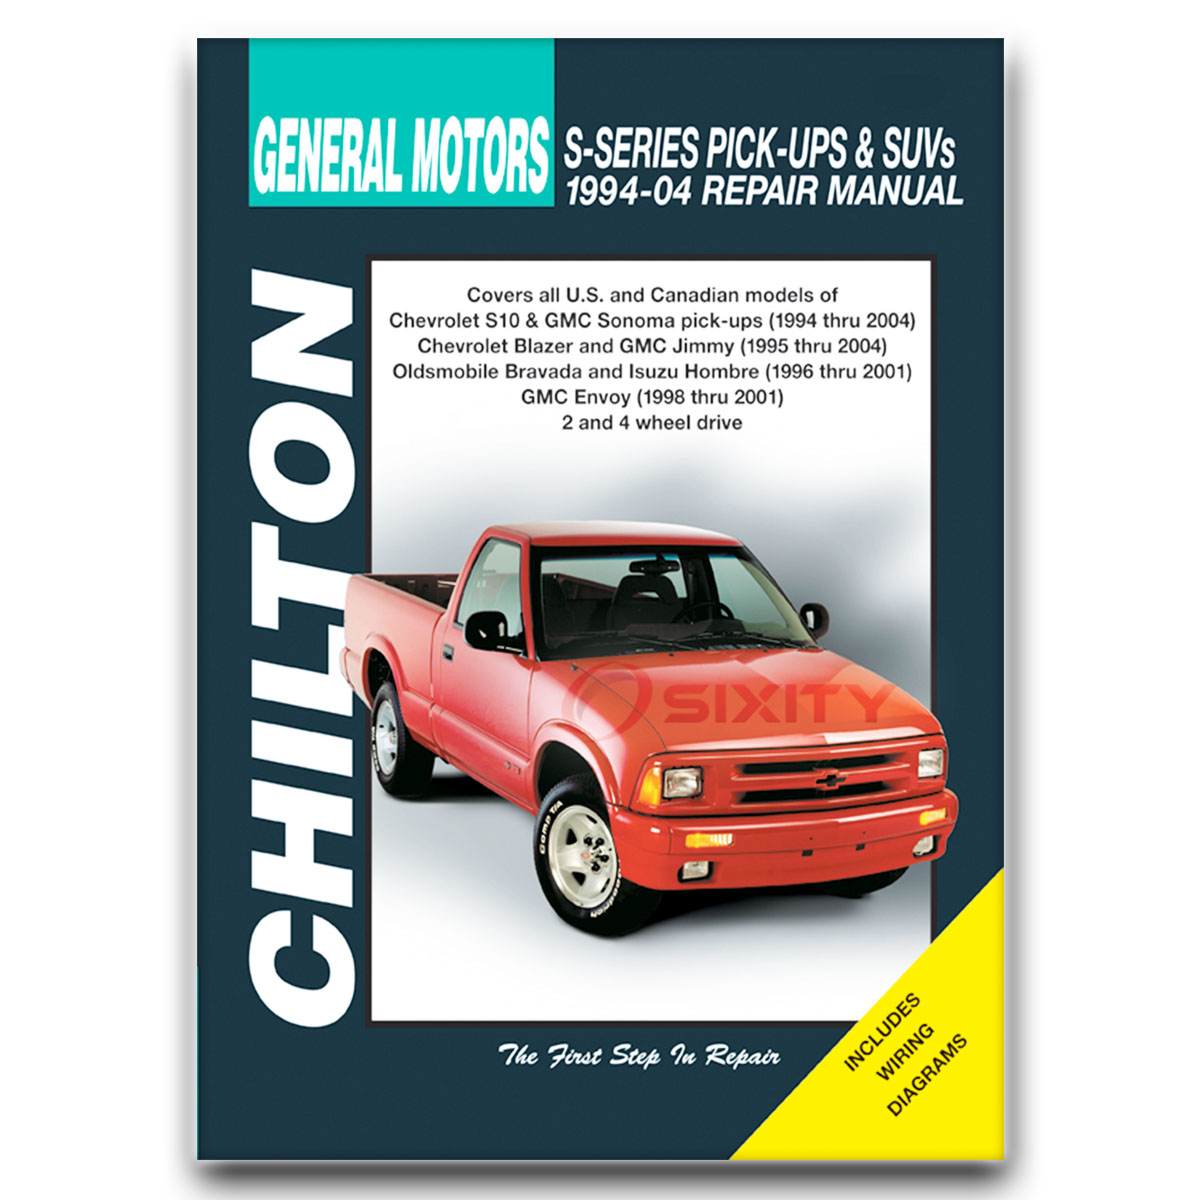 2000 chevy blazer service manual daily instruction manual guides u2022 rh testingwordpress co trailblazer owners manual 2002 2008 trailblazer user manual